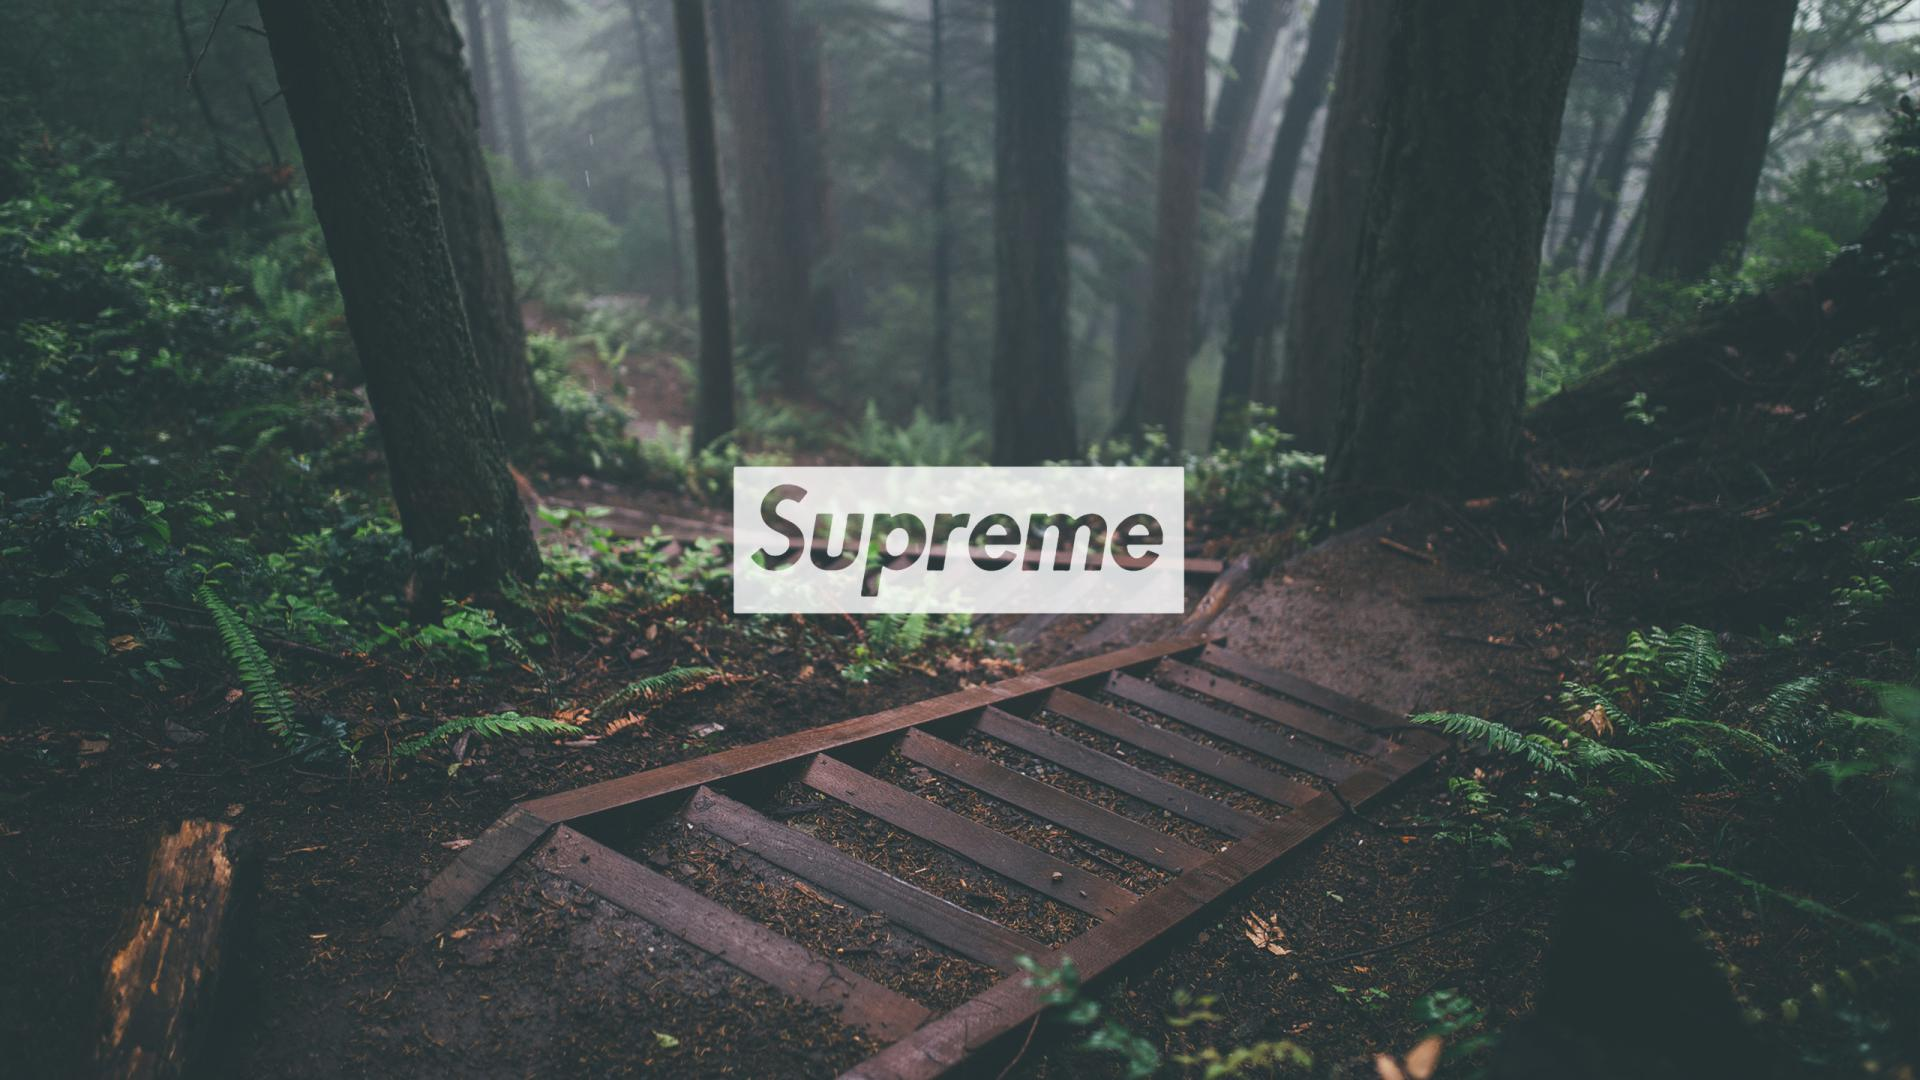 Hypebeast Wallpapers   Top Hypebeast Backgrounds 1920x1080